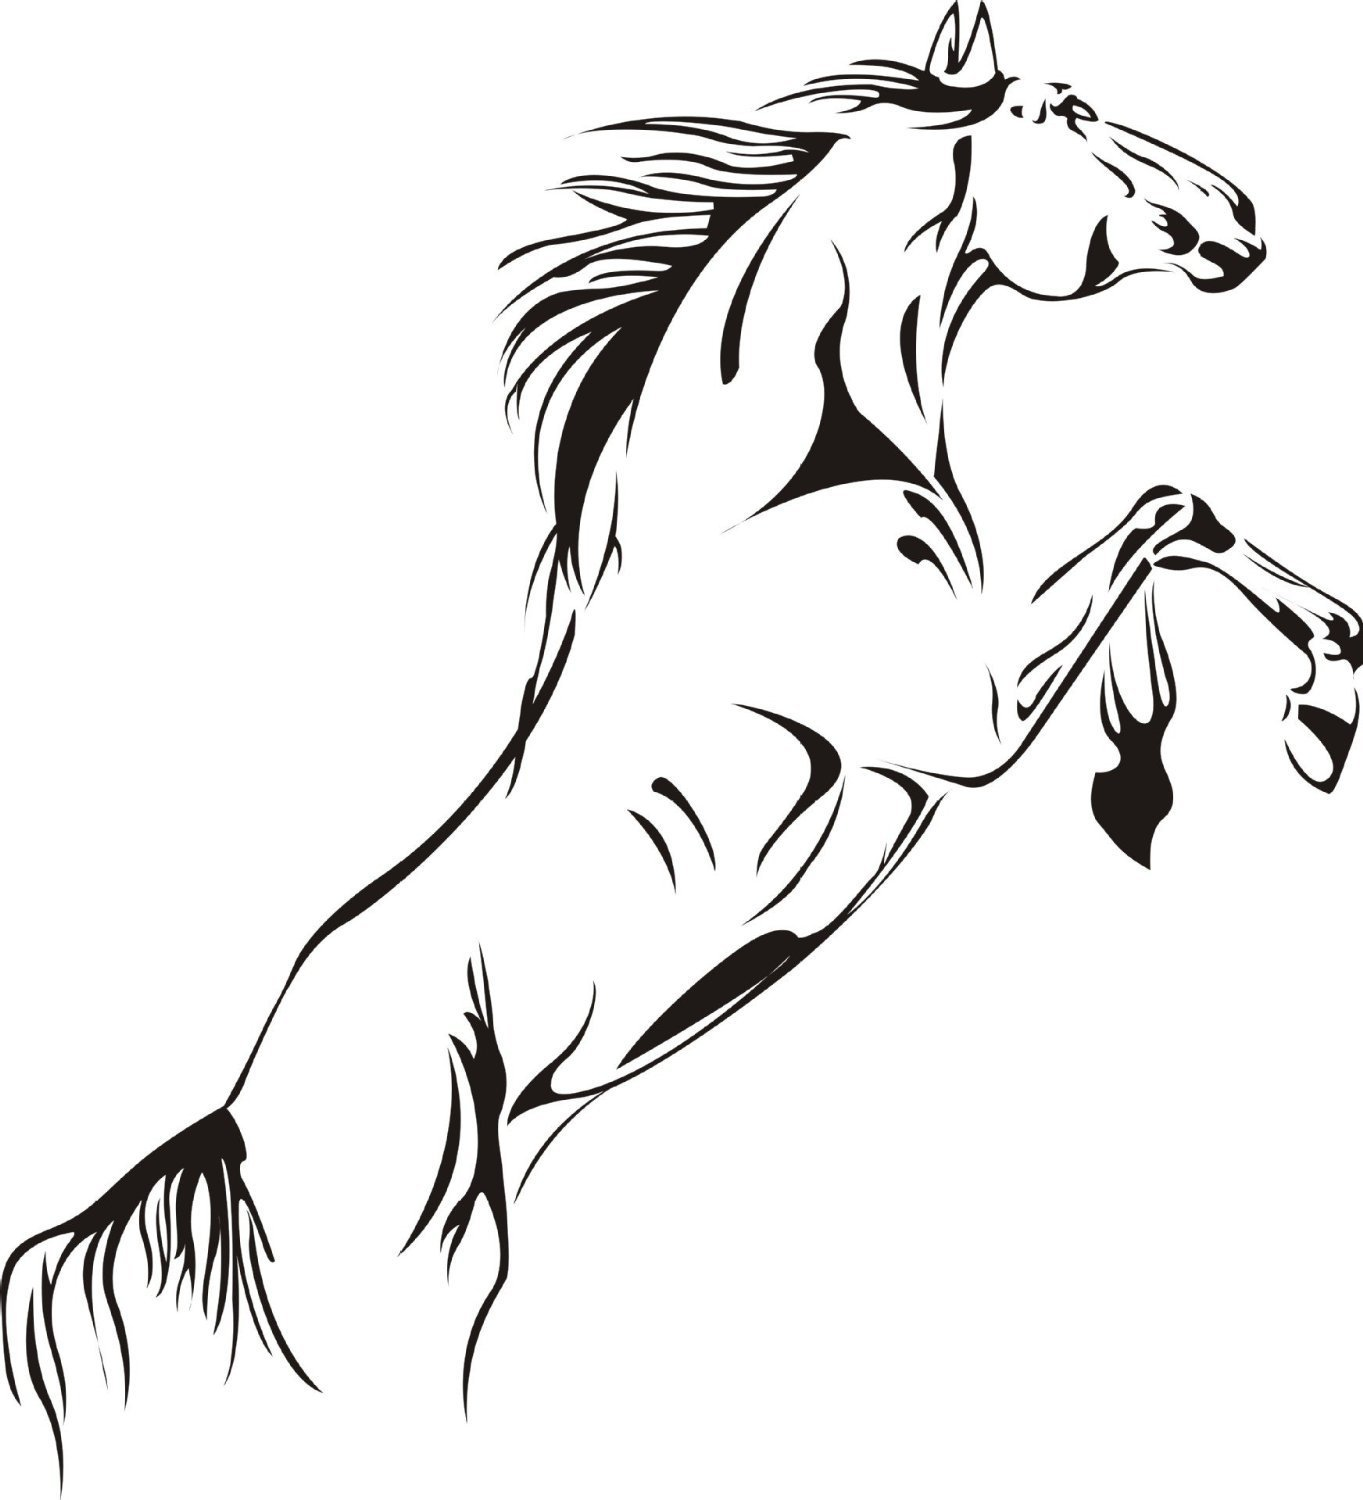 SWORNA Animal Series A Running Pale Horse Removable Vinyl Wall Art Decals Decor Wall Mural Decal Stickers for Bedroom/Living Room/Playroom/Office/Home Office/Sitting Room/Kindergarten/Classroom DIY Wall Art Decoration (18 Inch Height X 24 Inch Width, Matt